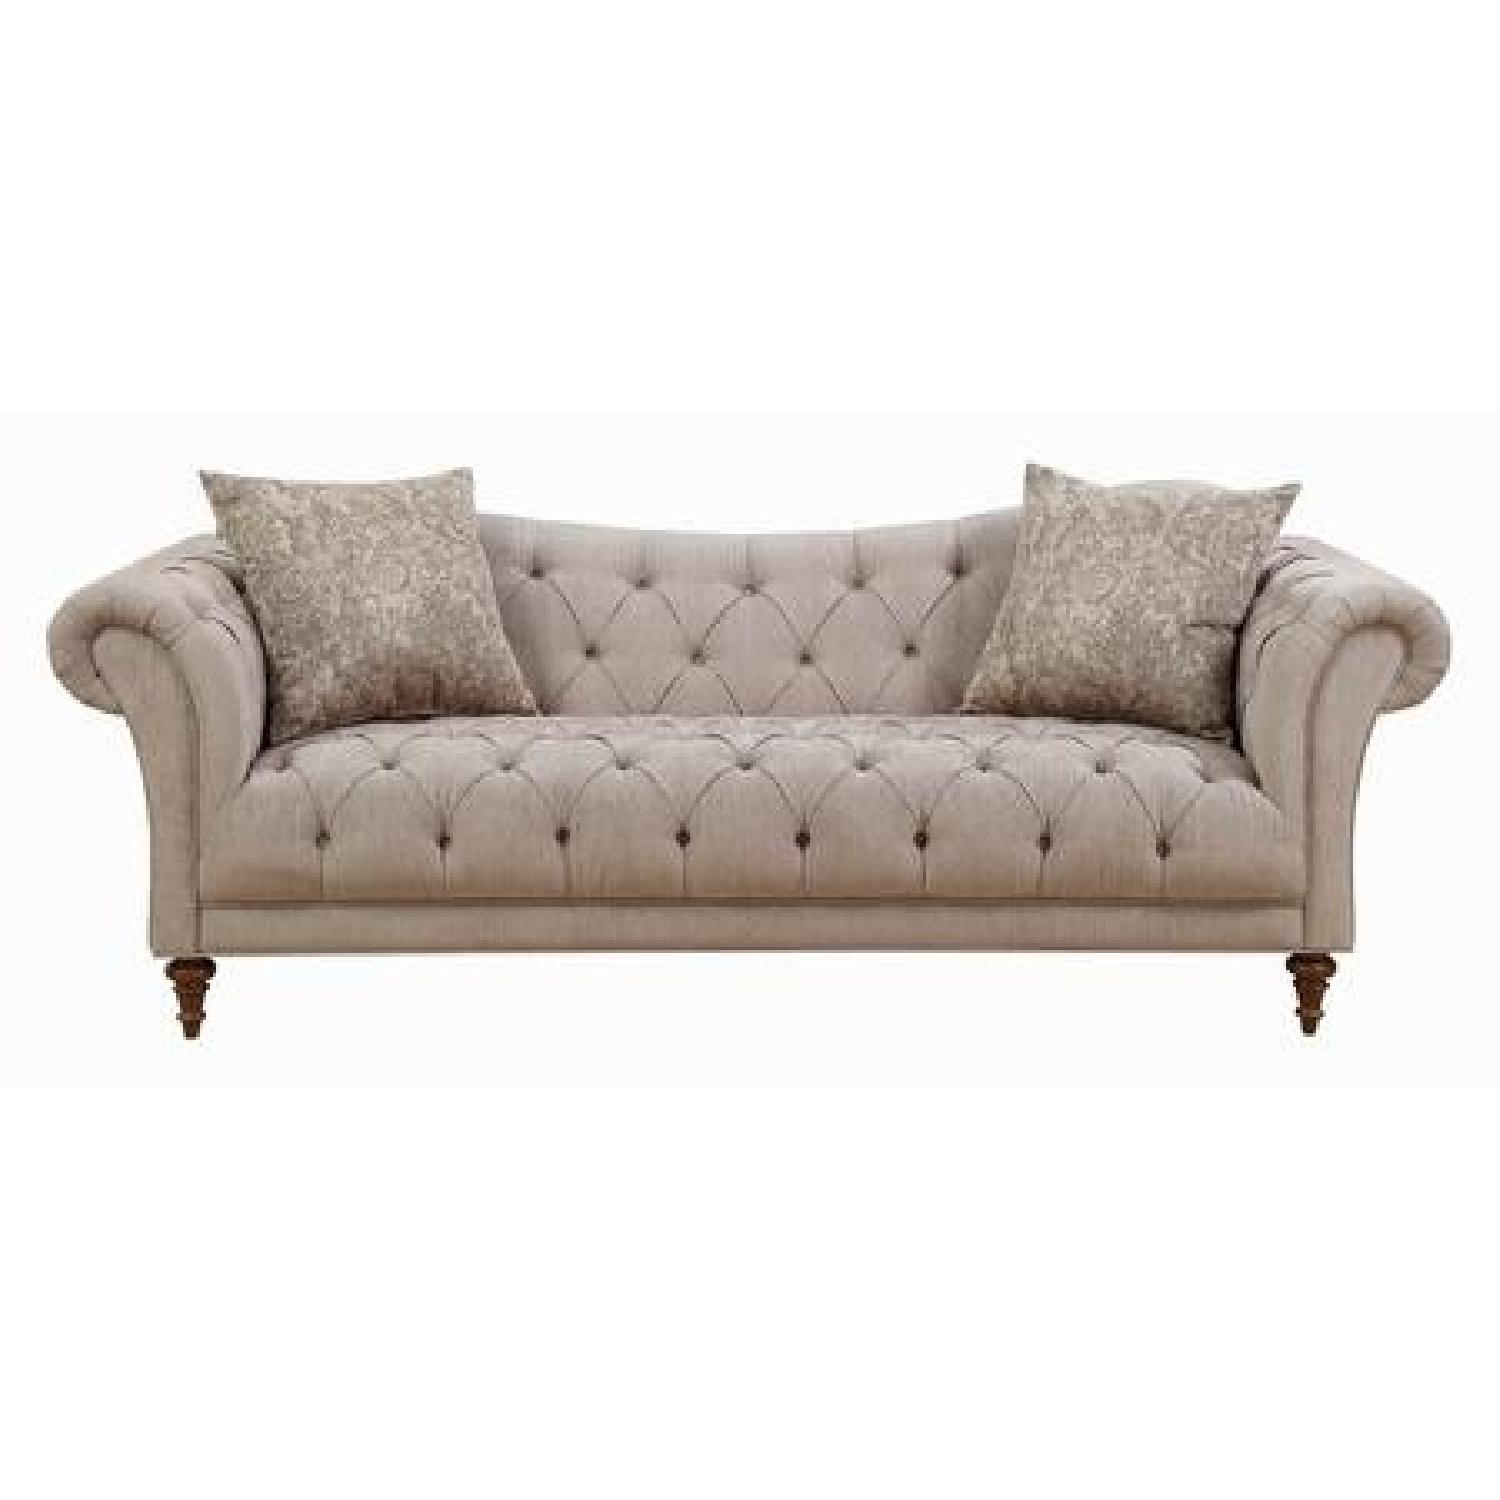 Light Brown Tufted Sofa